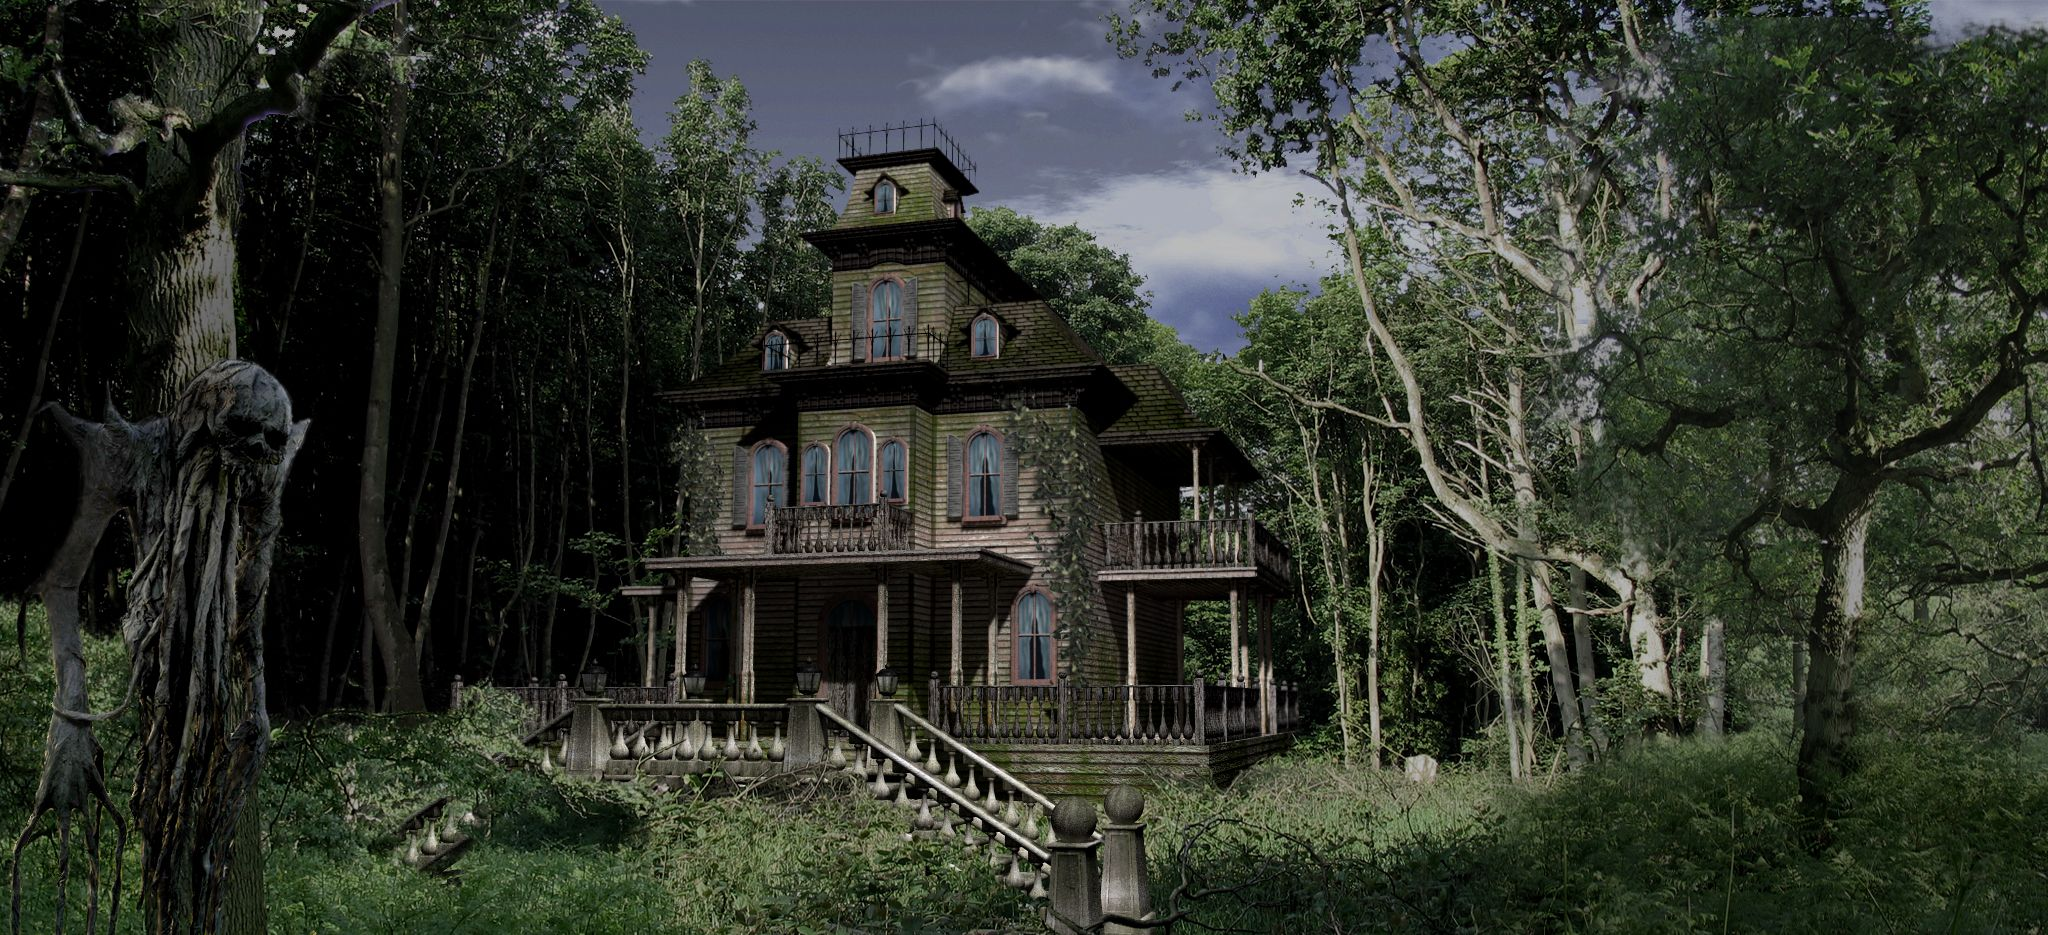 Montco 39 s local haunted houses montco happening for Pinterest haunted house